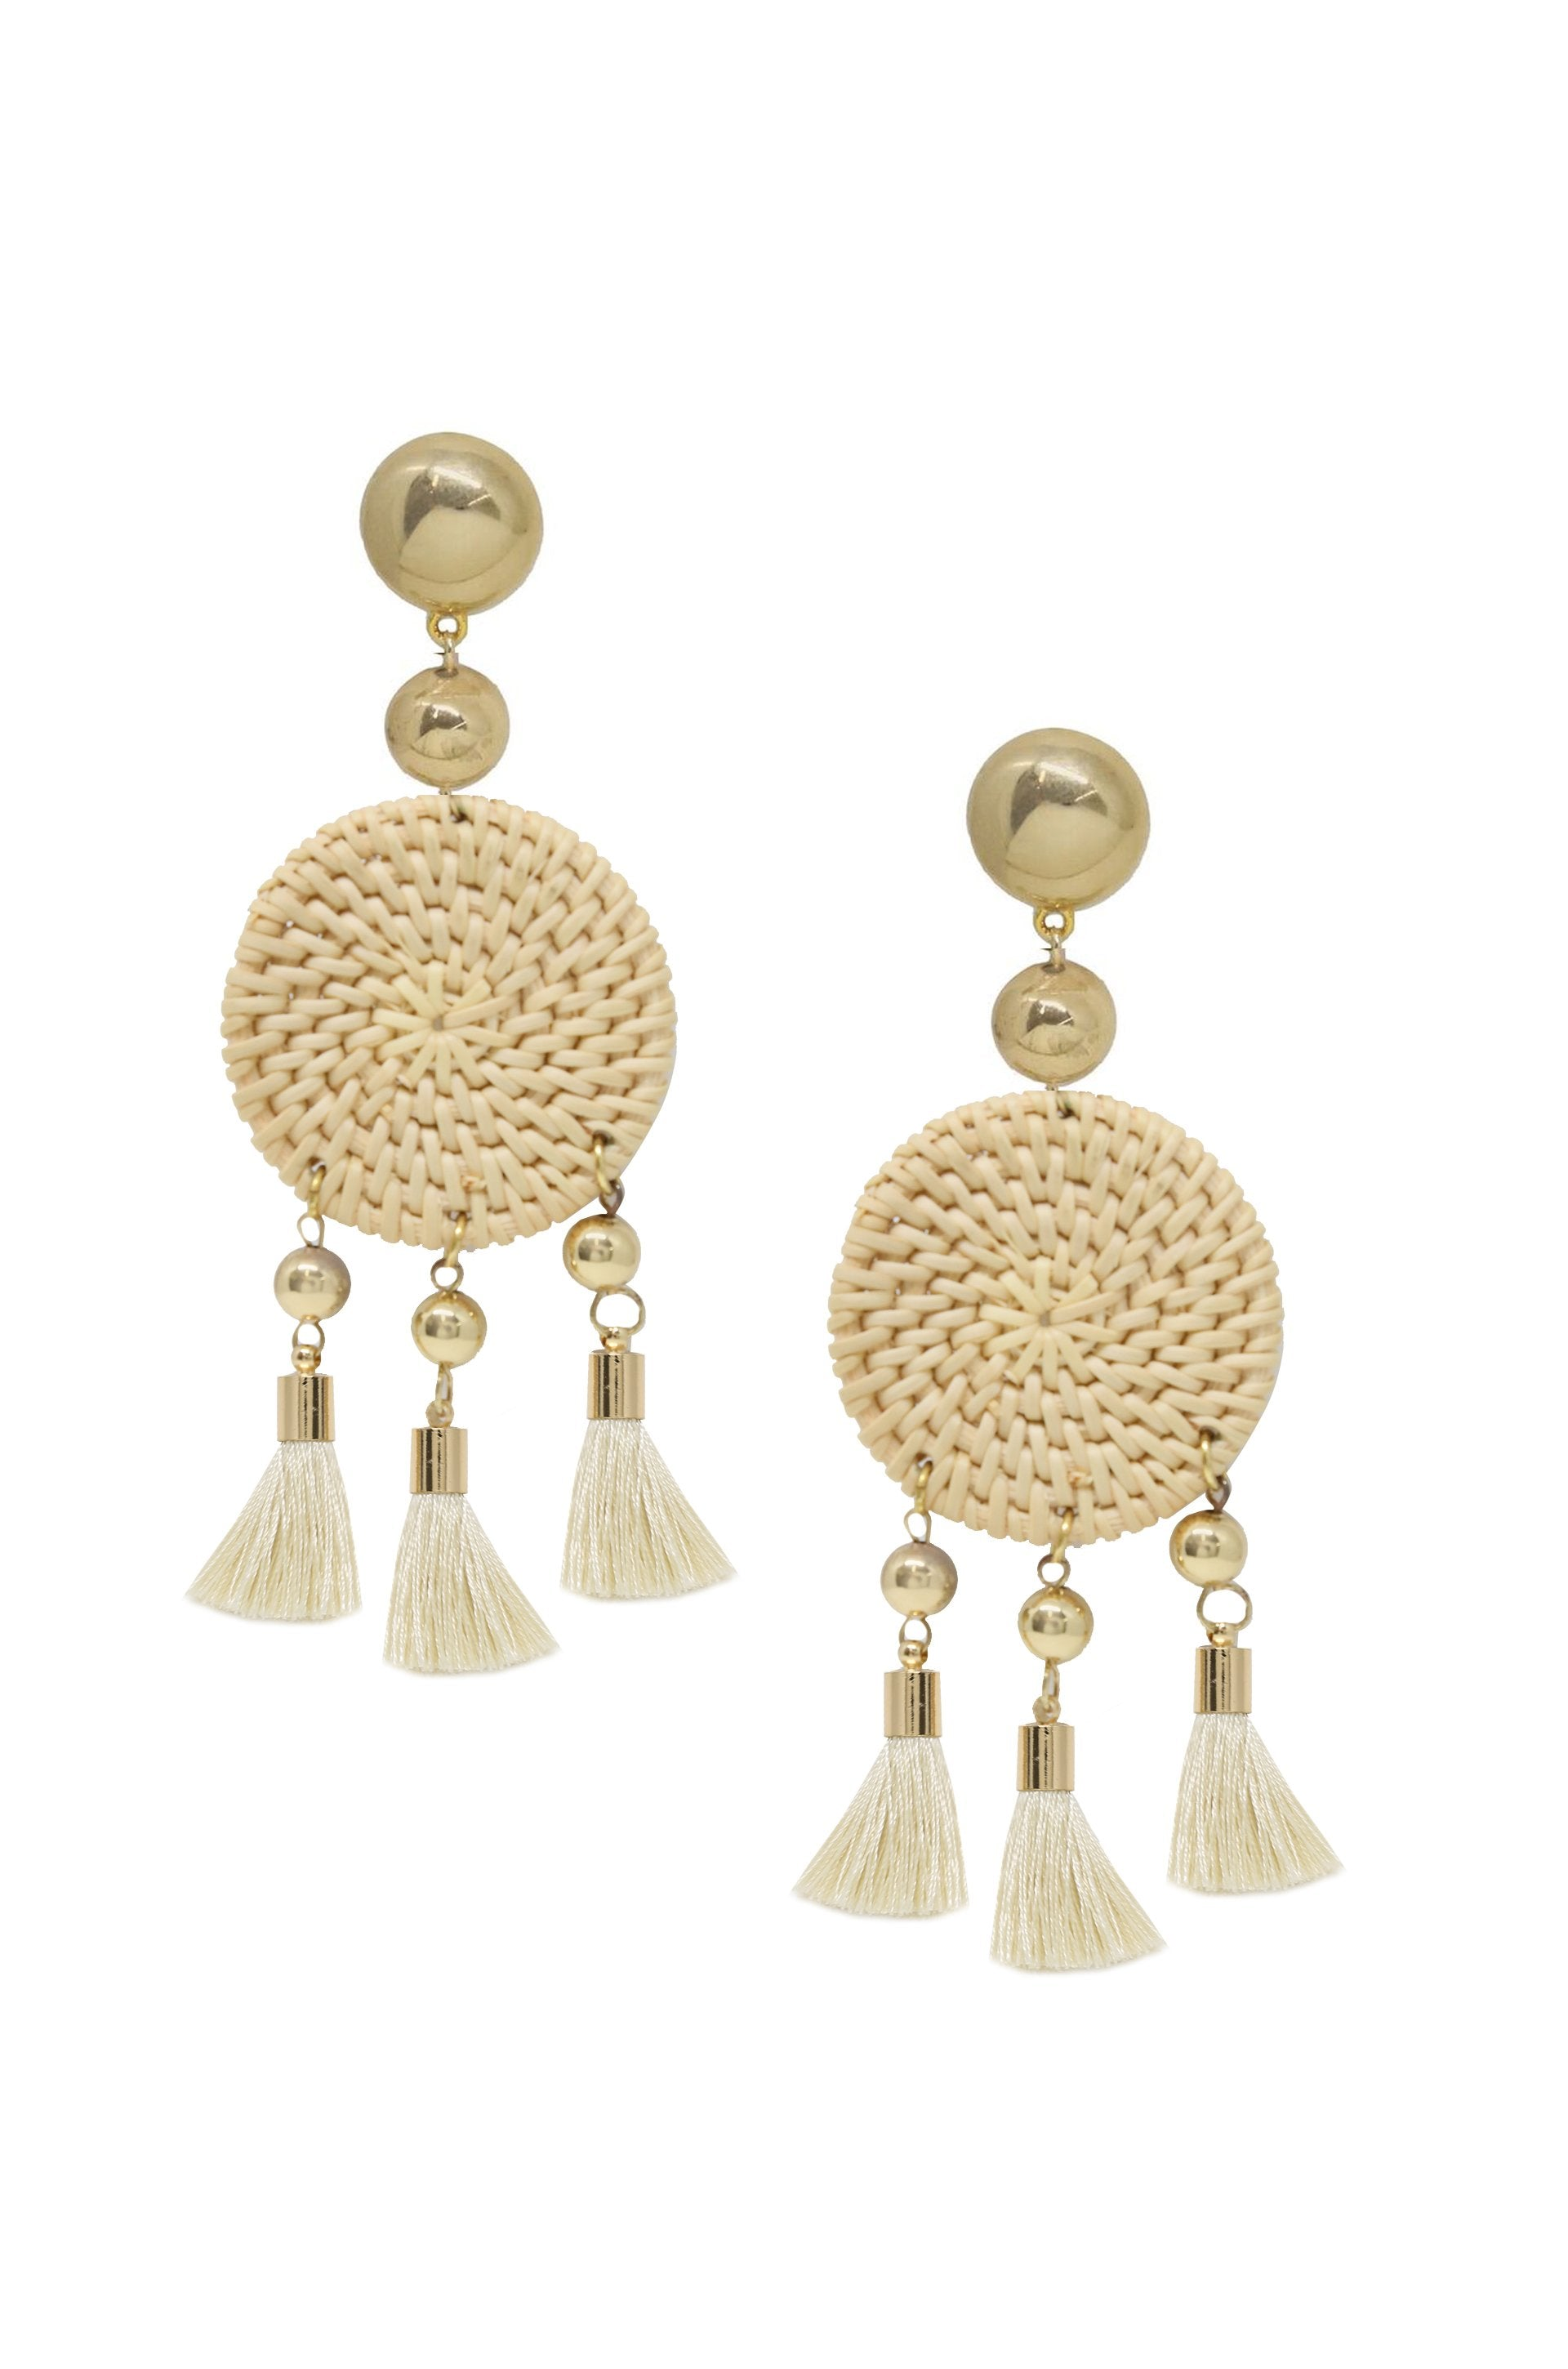 Boho Woven Natural Tassel Earrings in Cream and Gold - Zip & Mos